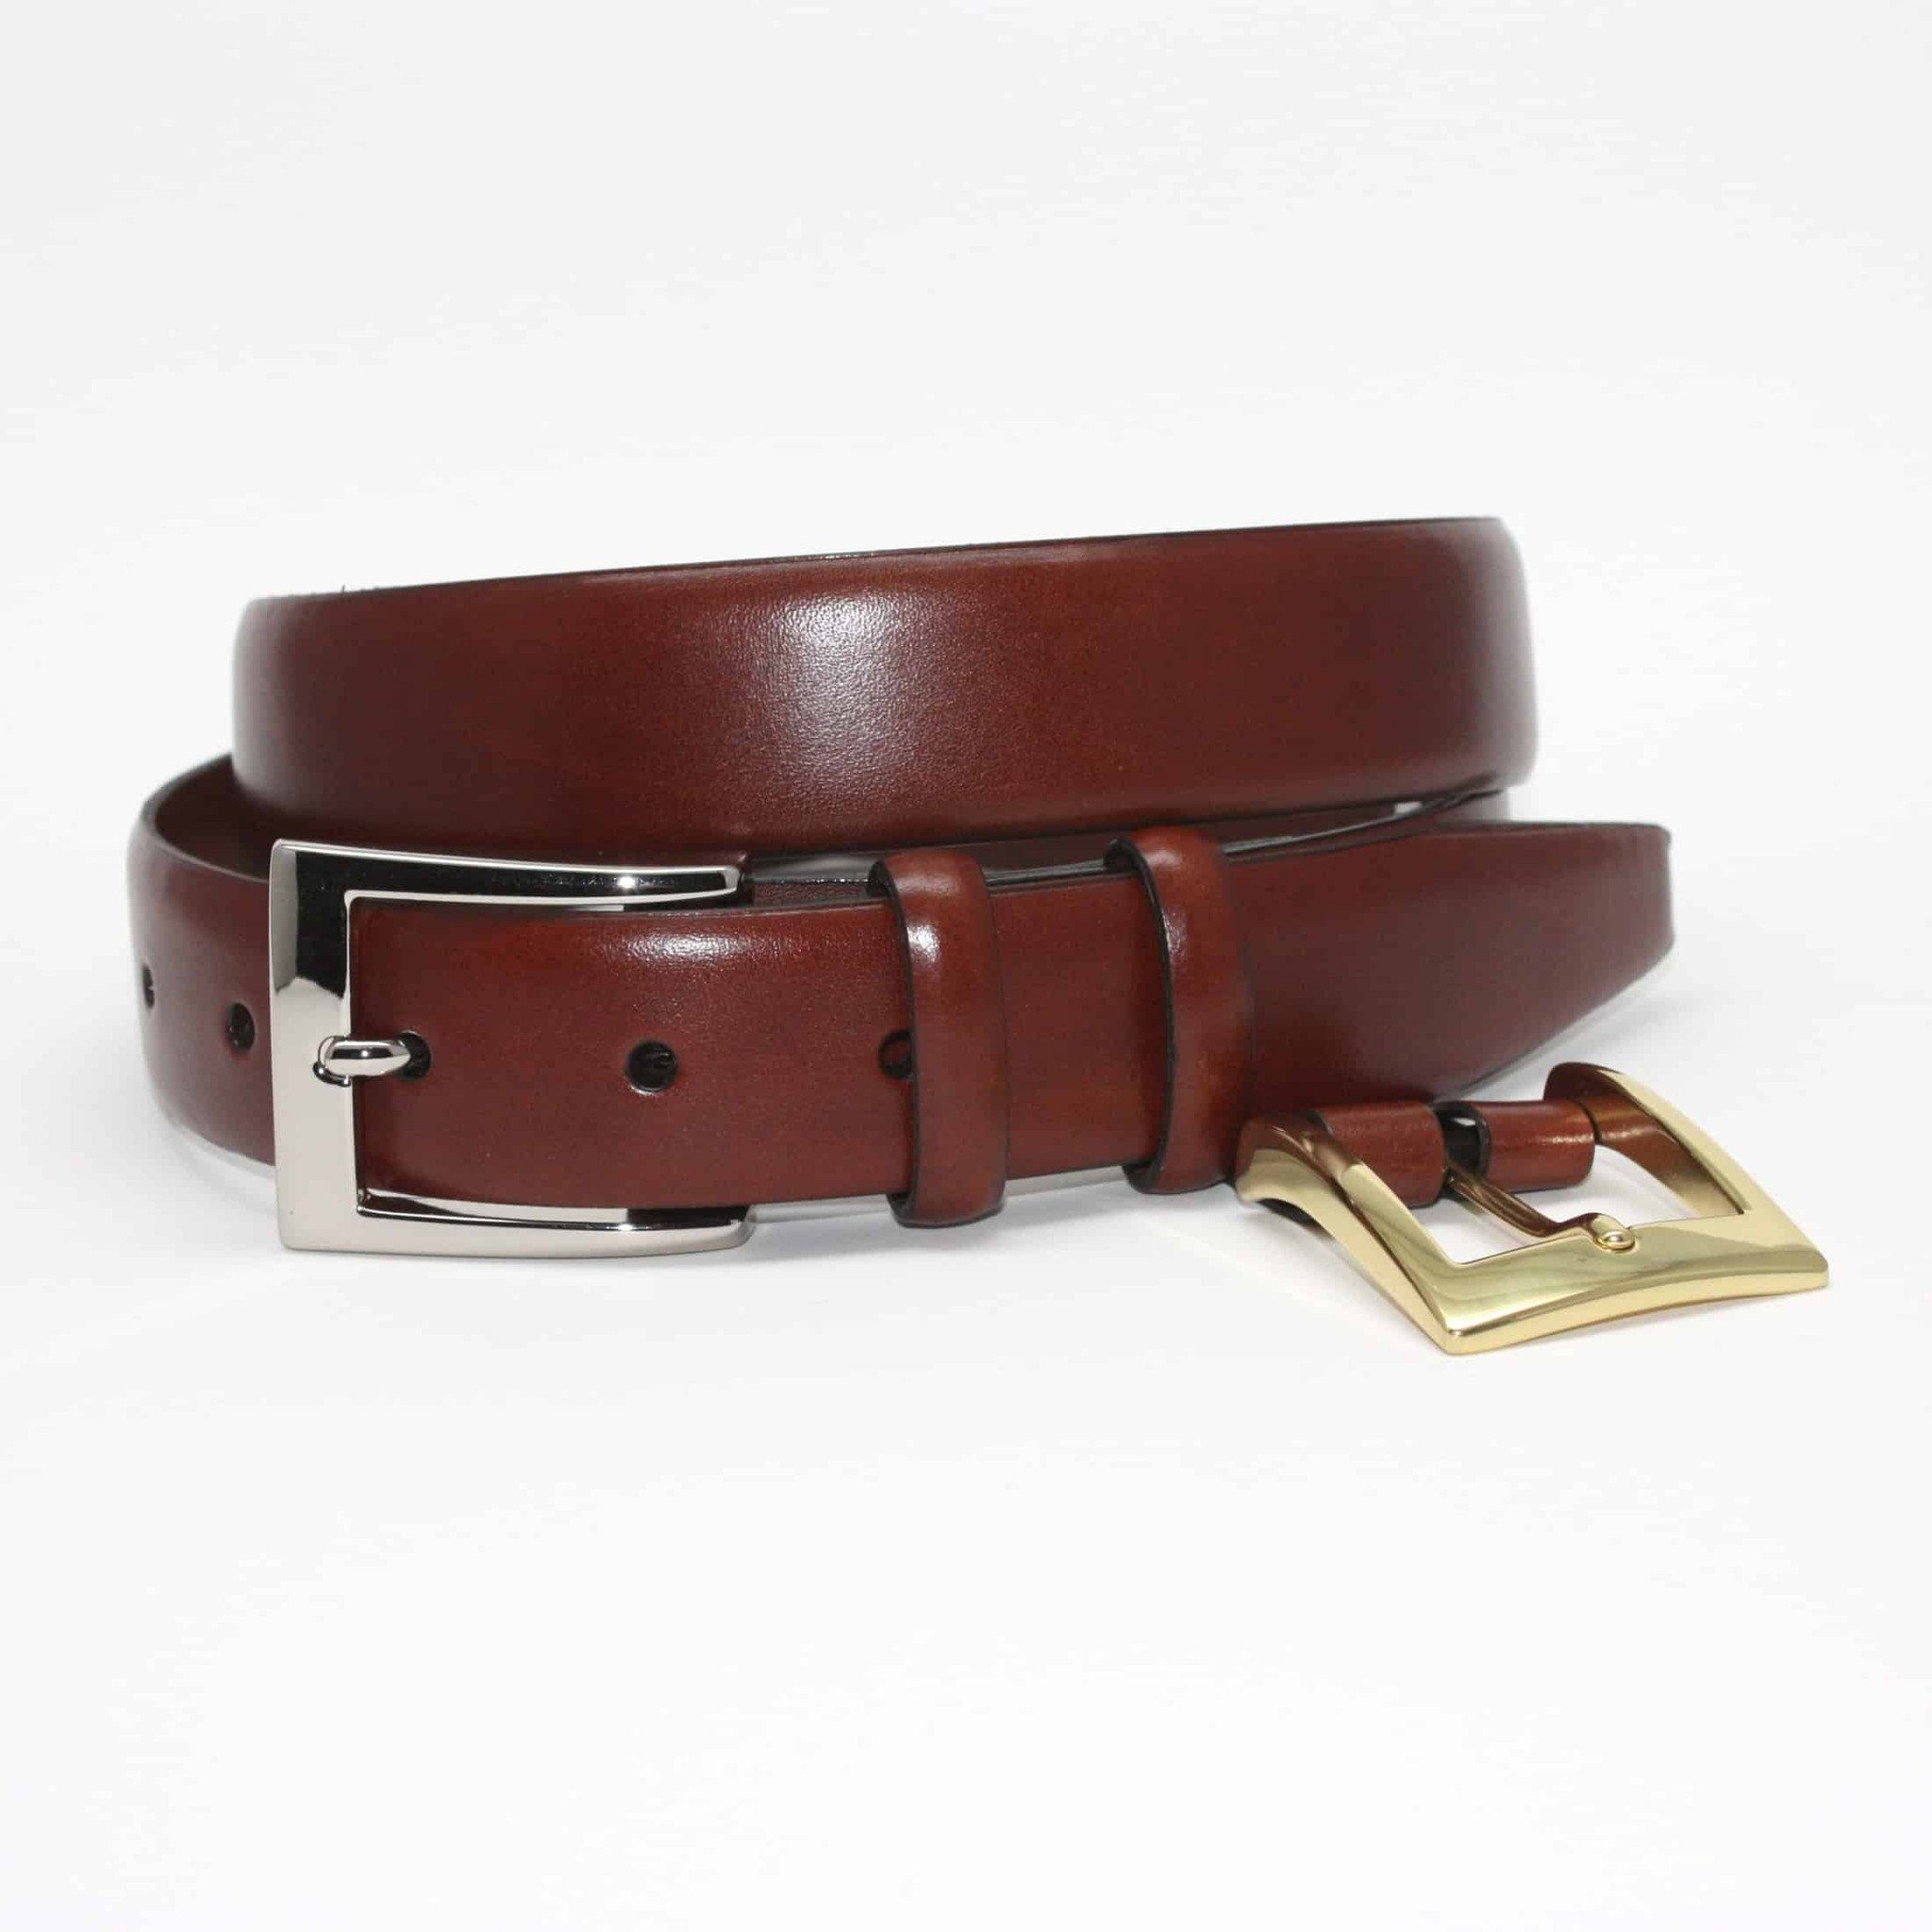 Italian Calfskin Double Buckle Option Belt - Chili,BELT,GentRow.com, | GentRow.com